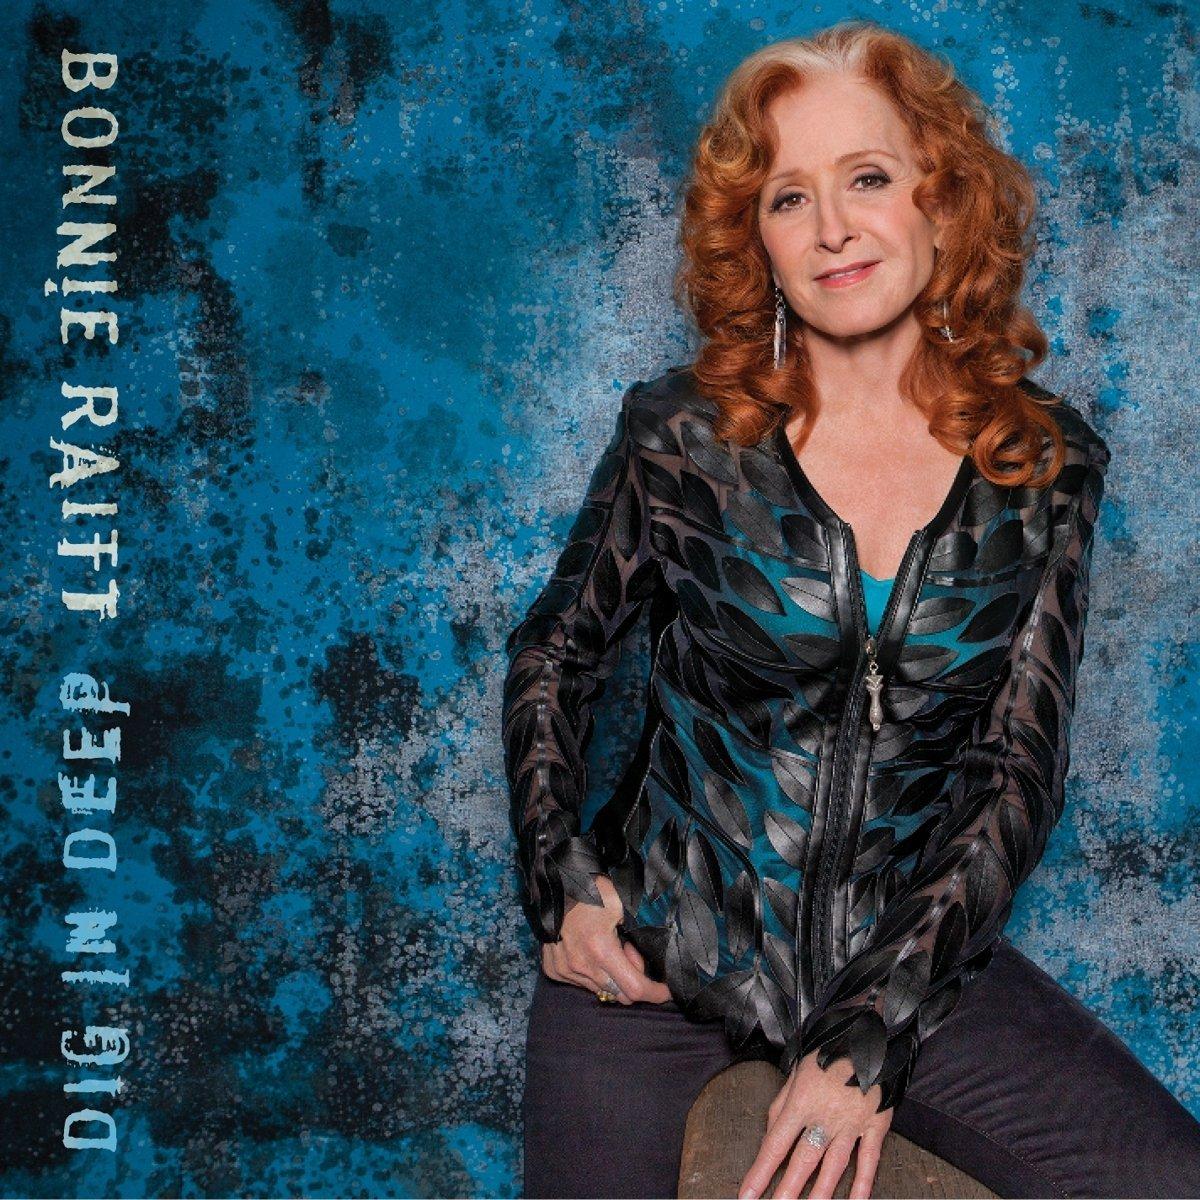 Bonnie Raitt: Dig In Deep [Album Review]